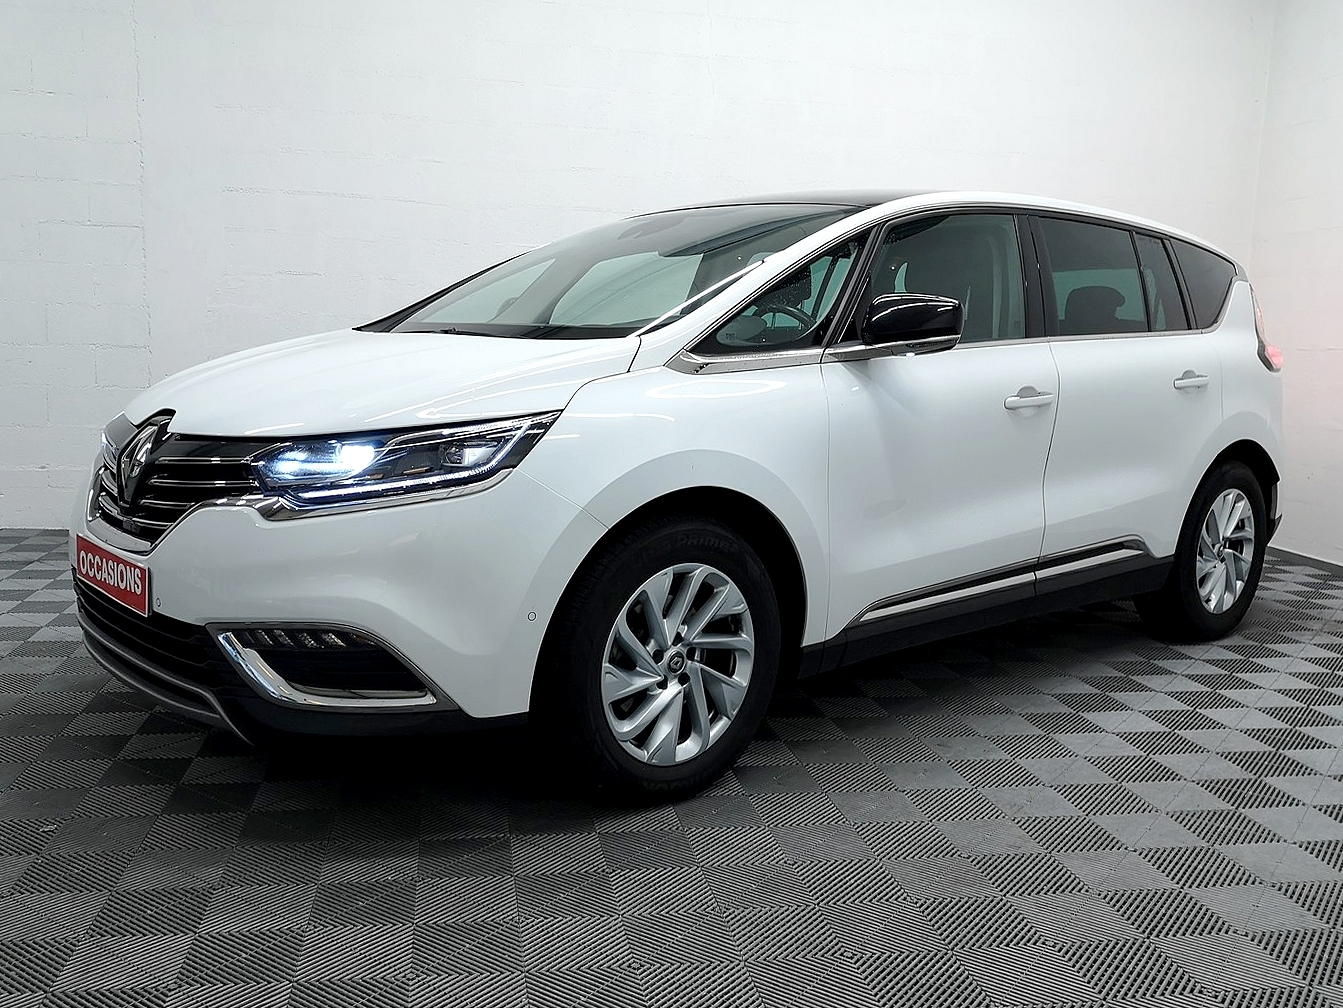 RENAULT ESPACE V dCi 160 Energy Twin Turbo Zen EDC d'occasion